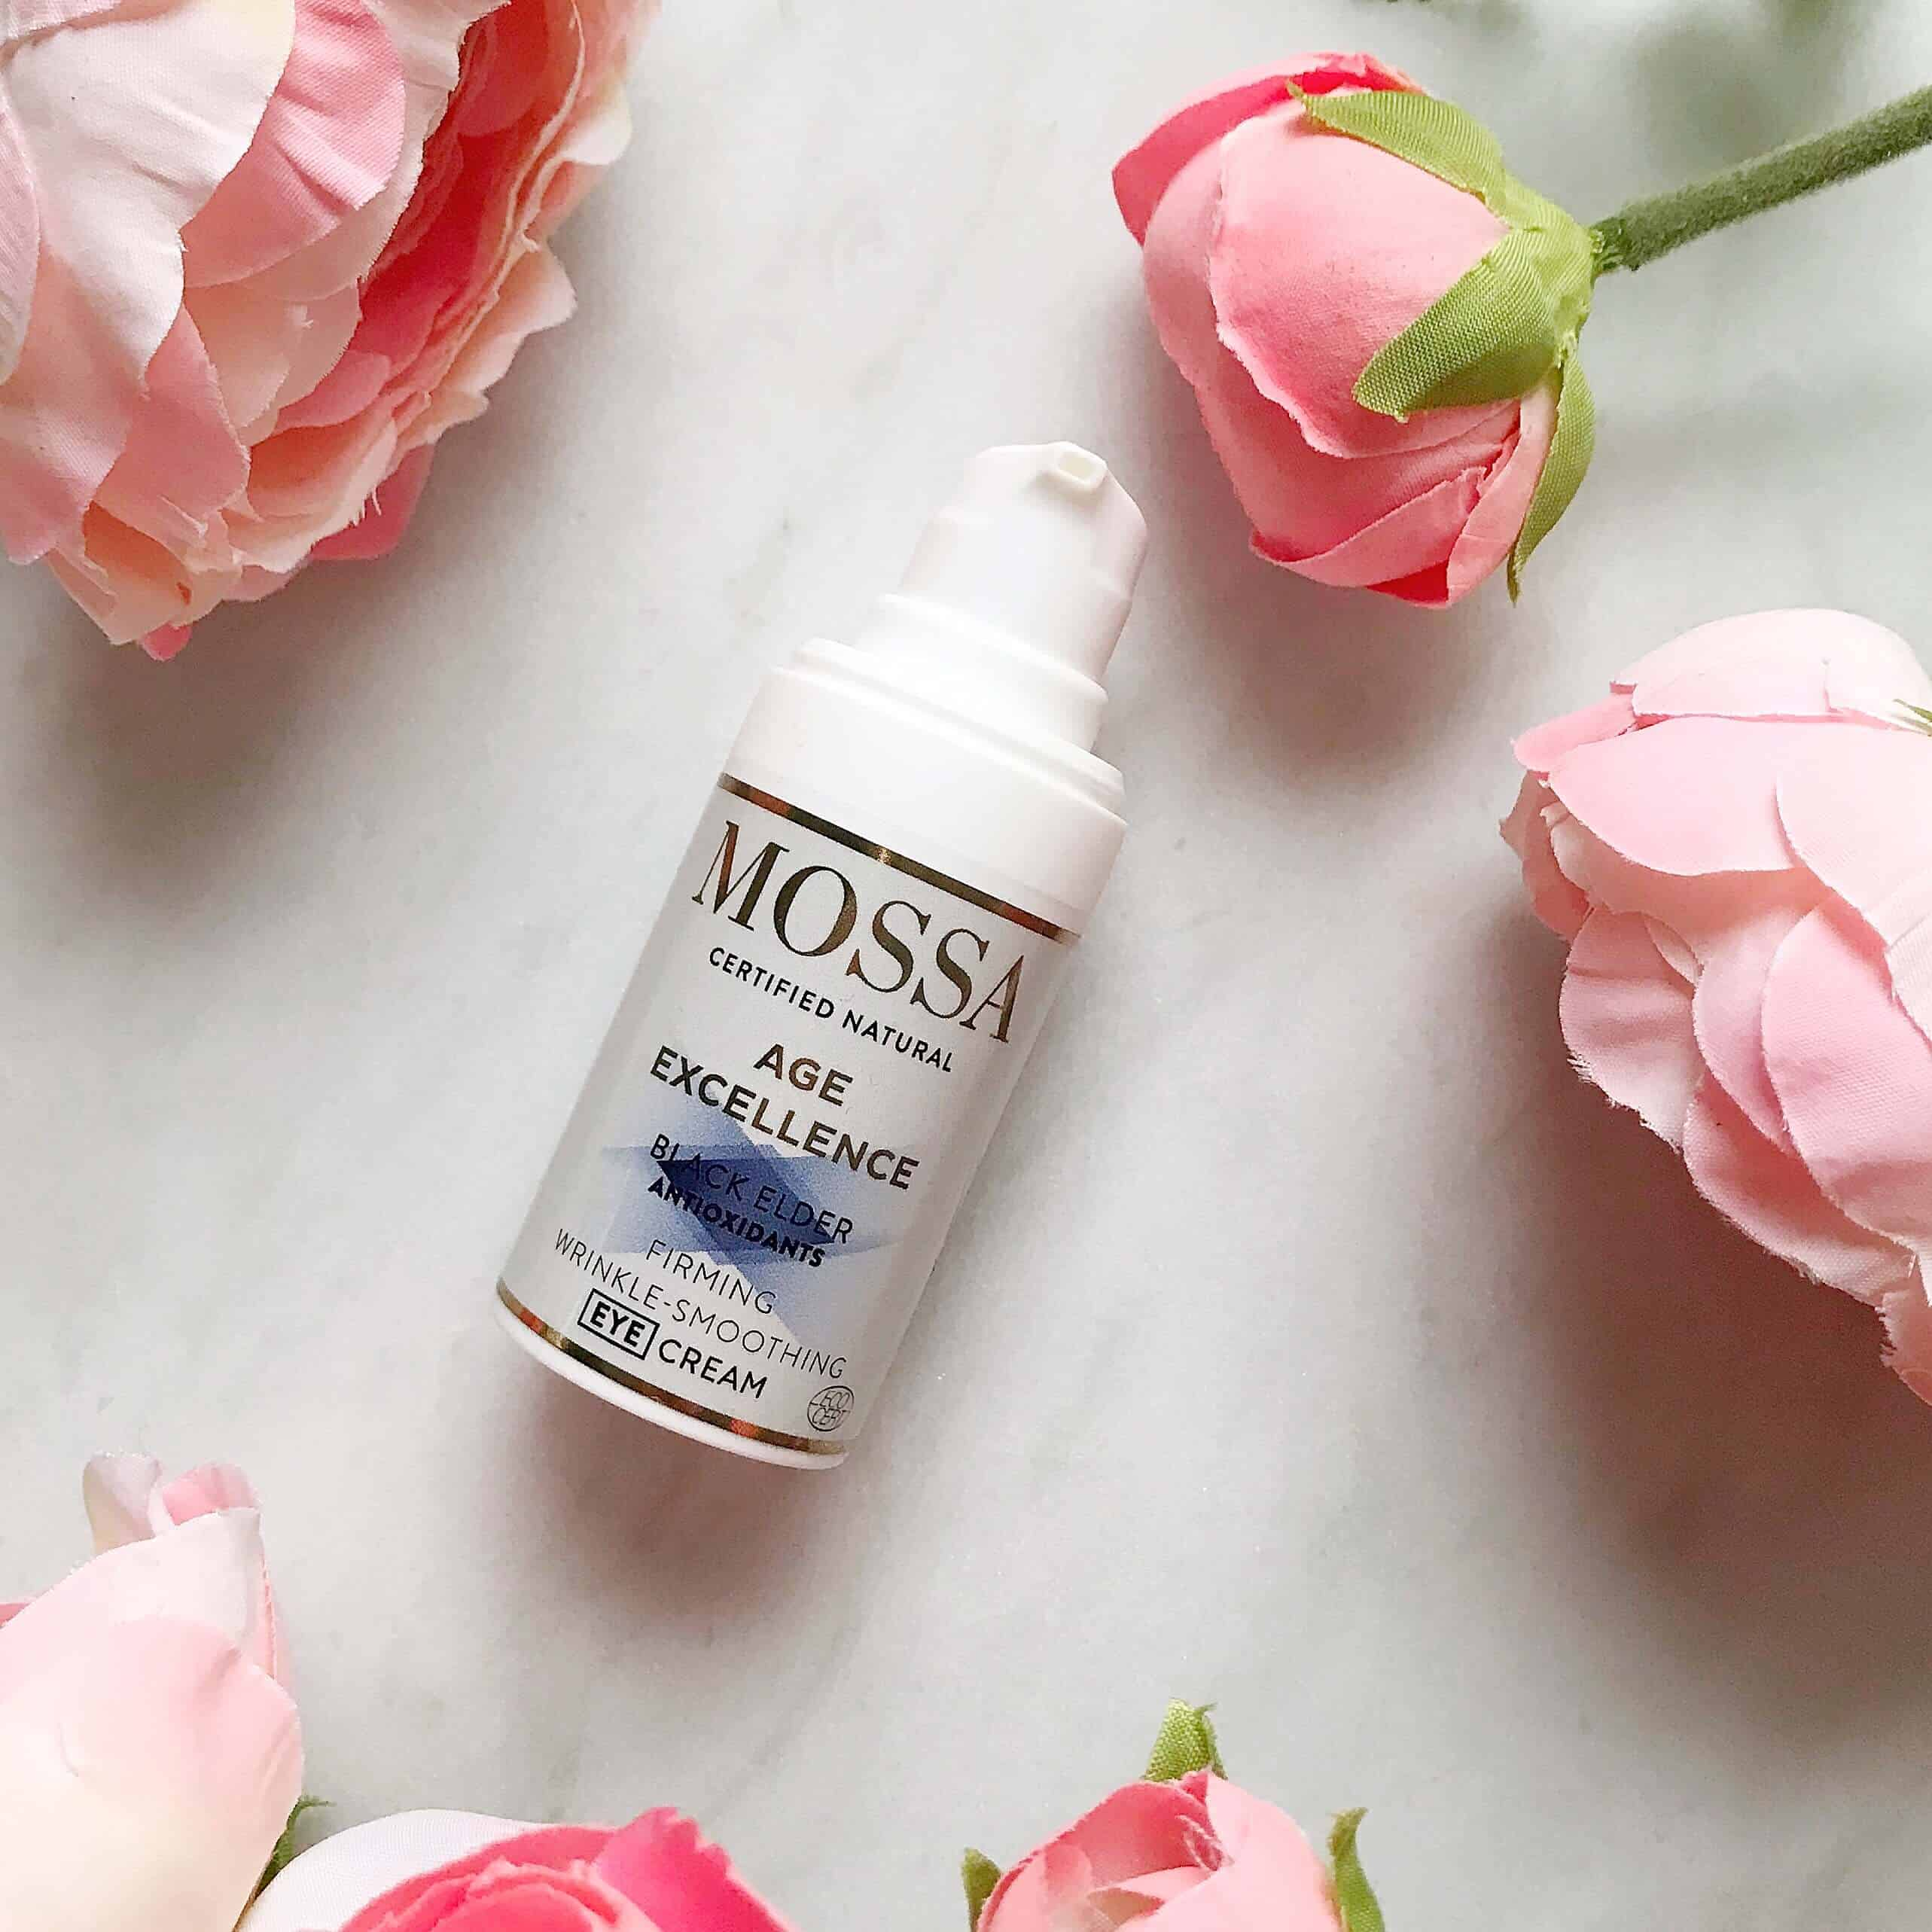 Mossa Organic Skincare: Age Excellence Firming Wrinkle Smoothing Eye Cream